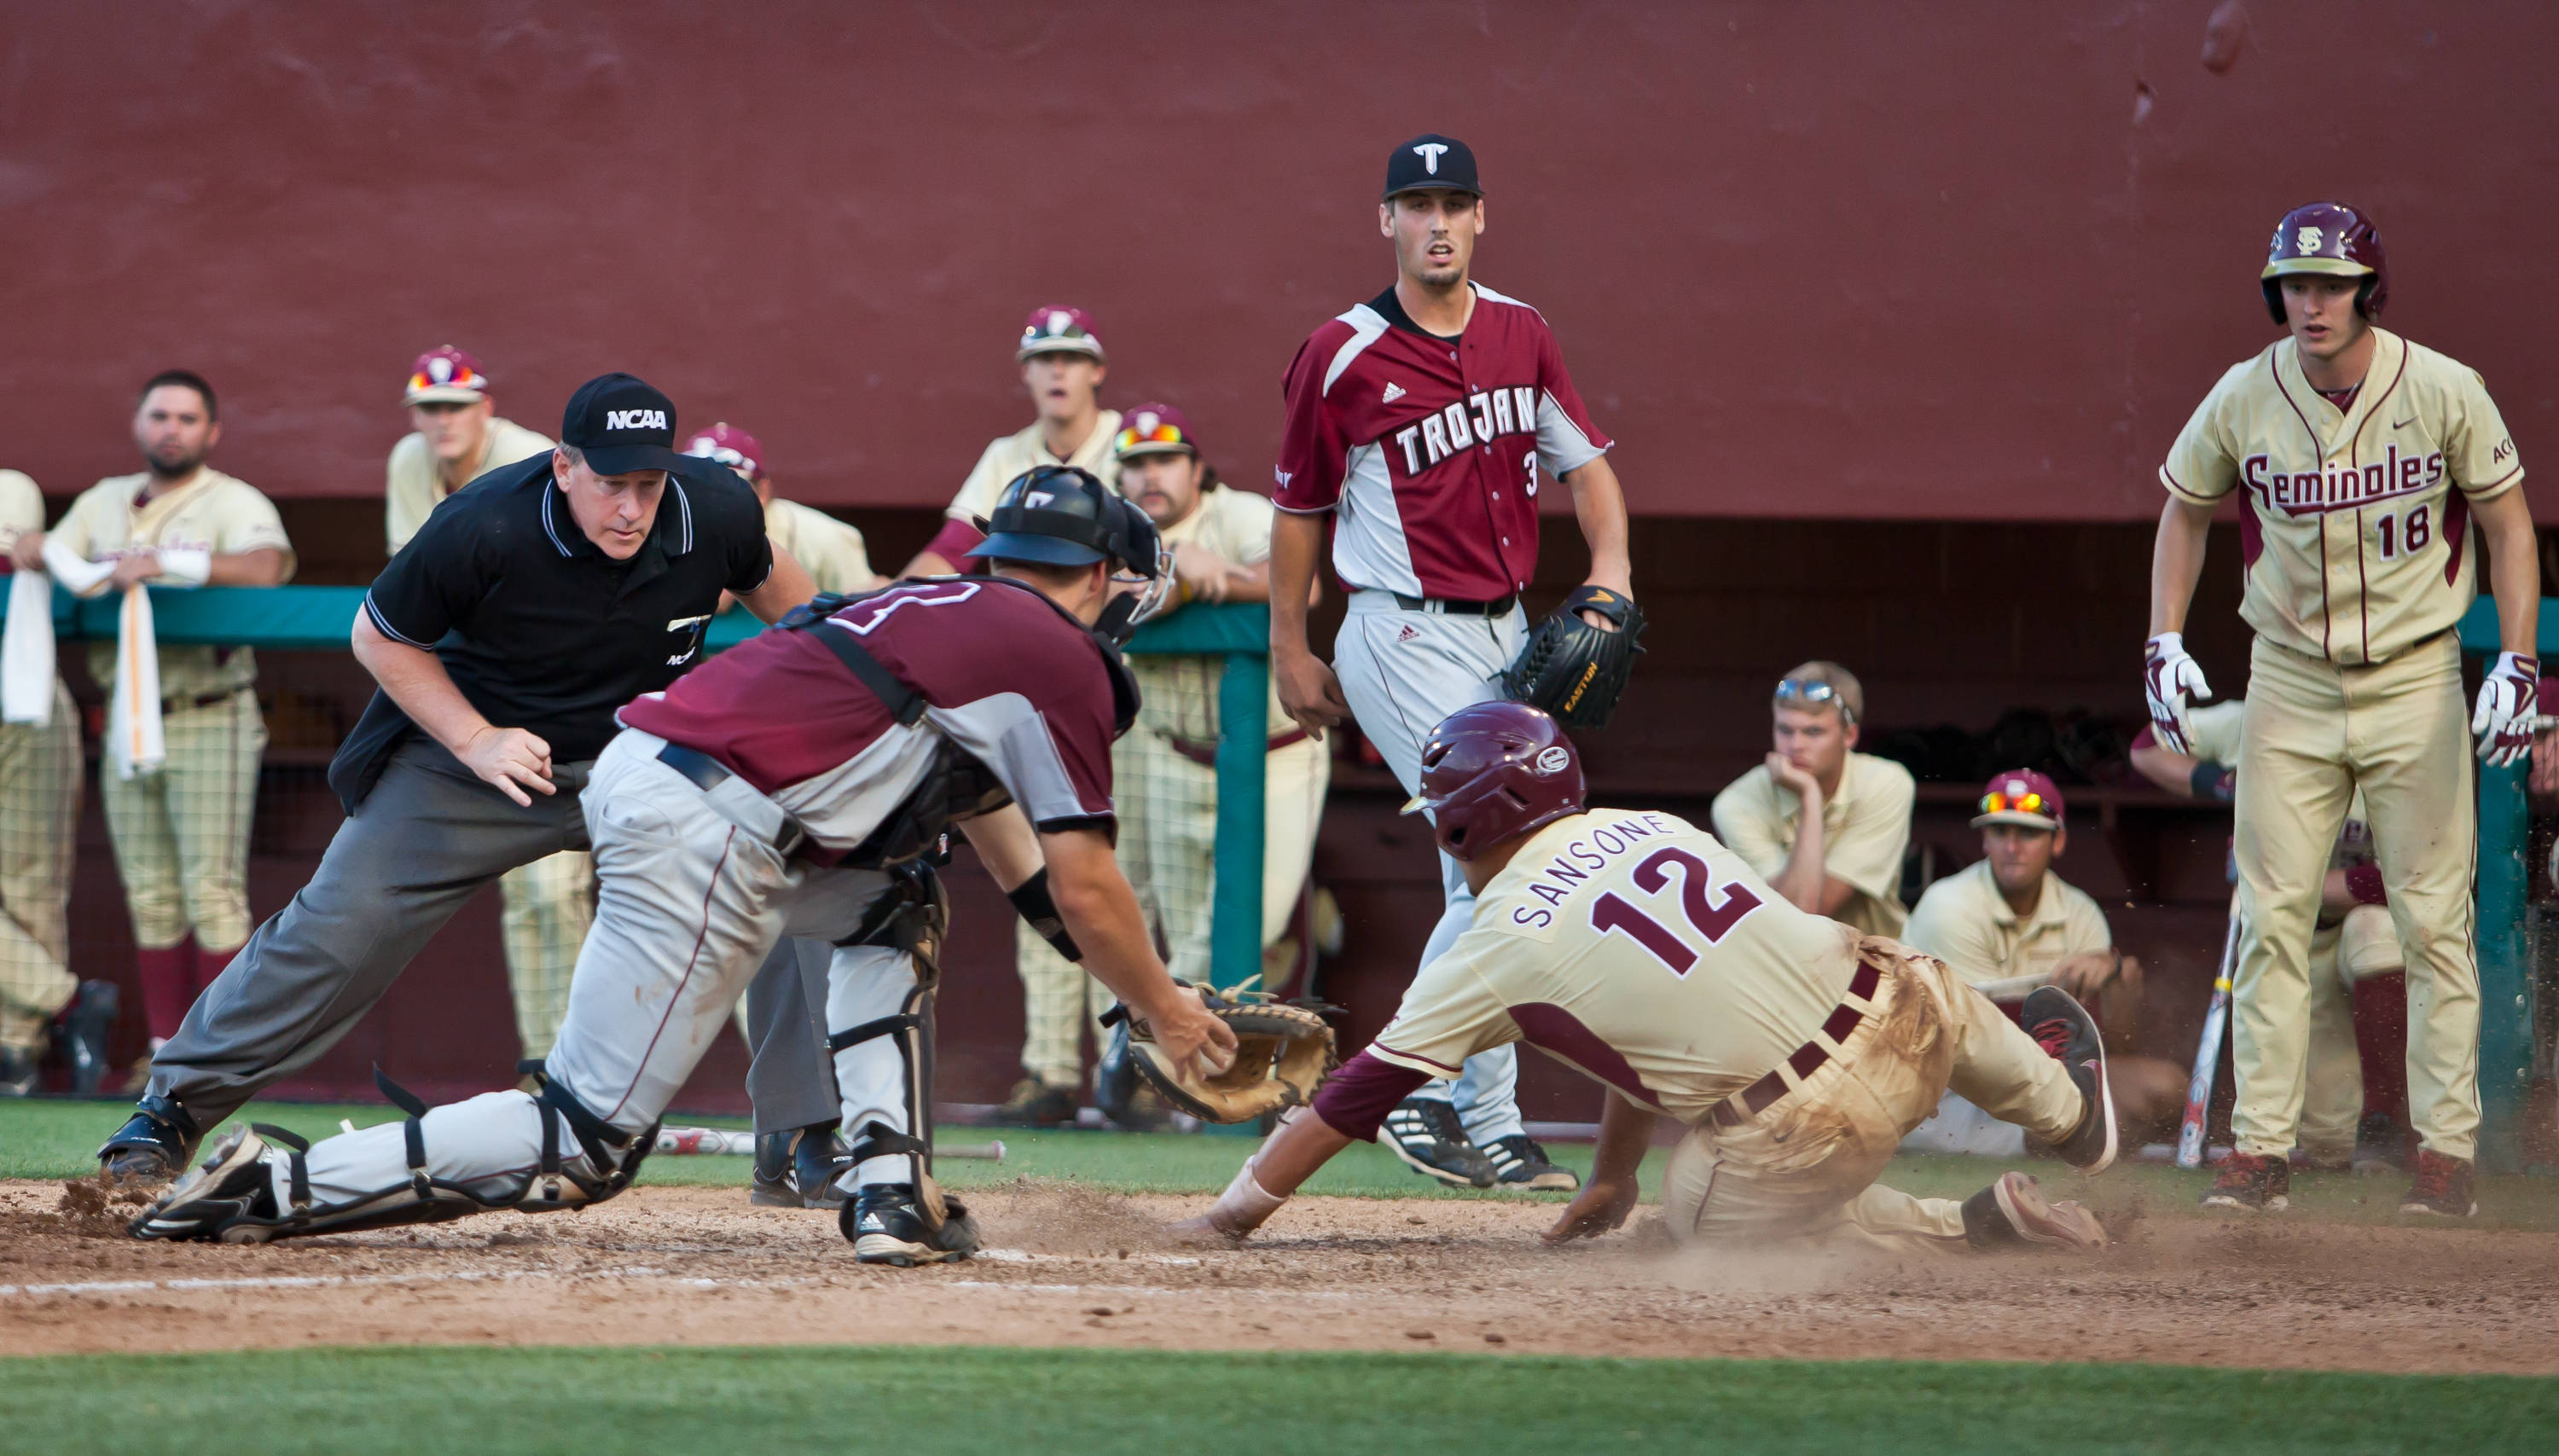 John Sansone slides ahead of the tag in the seventh inning.